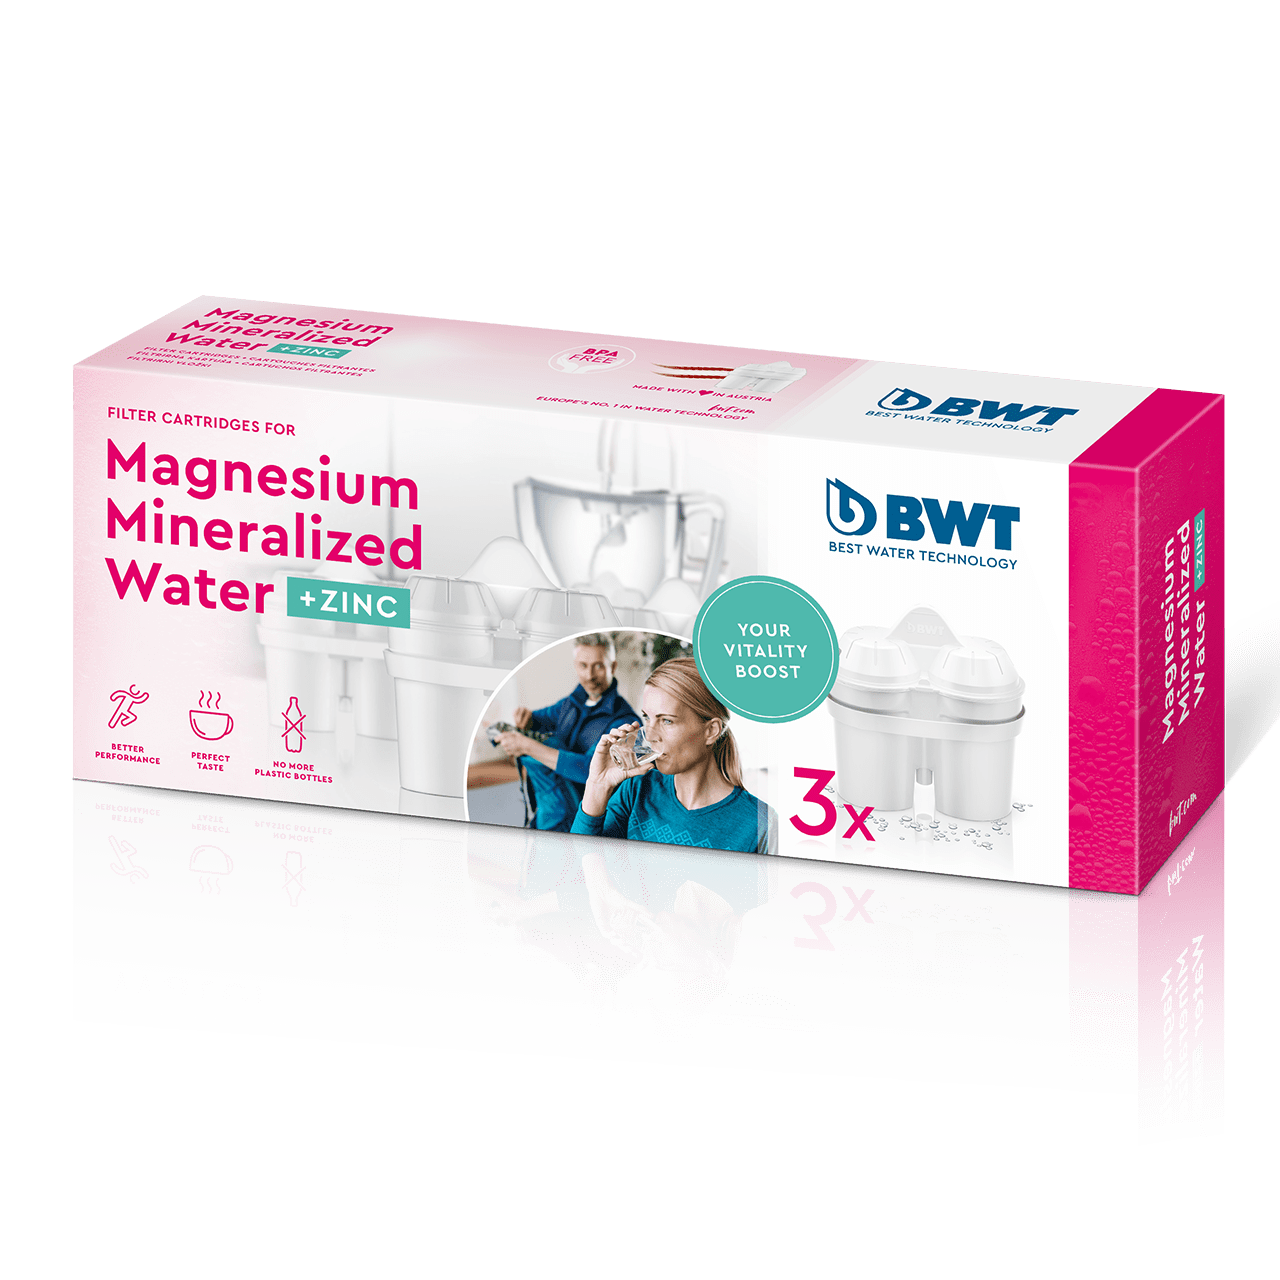 Magnesium Mineralized Water with Zinc